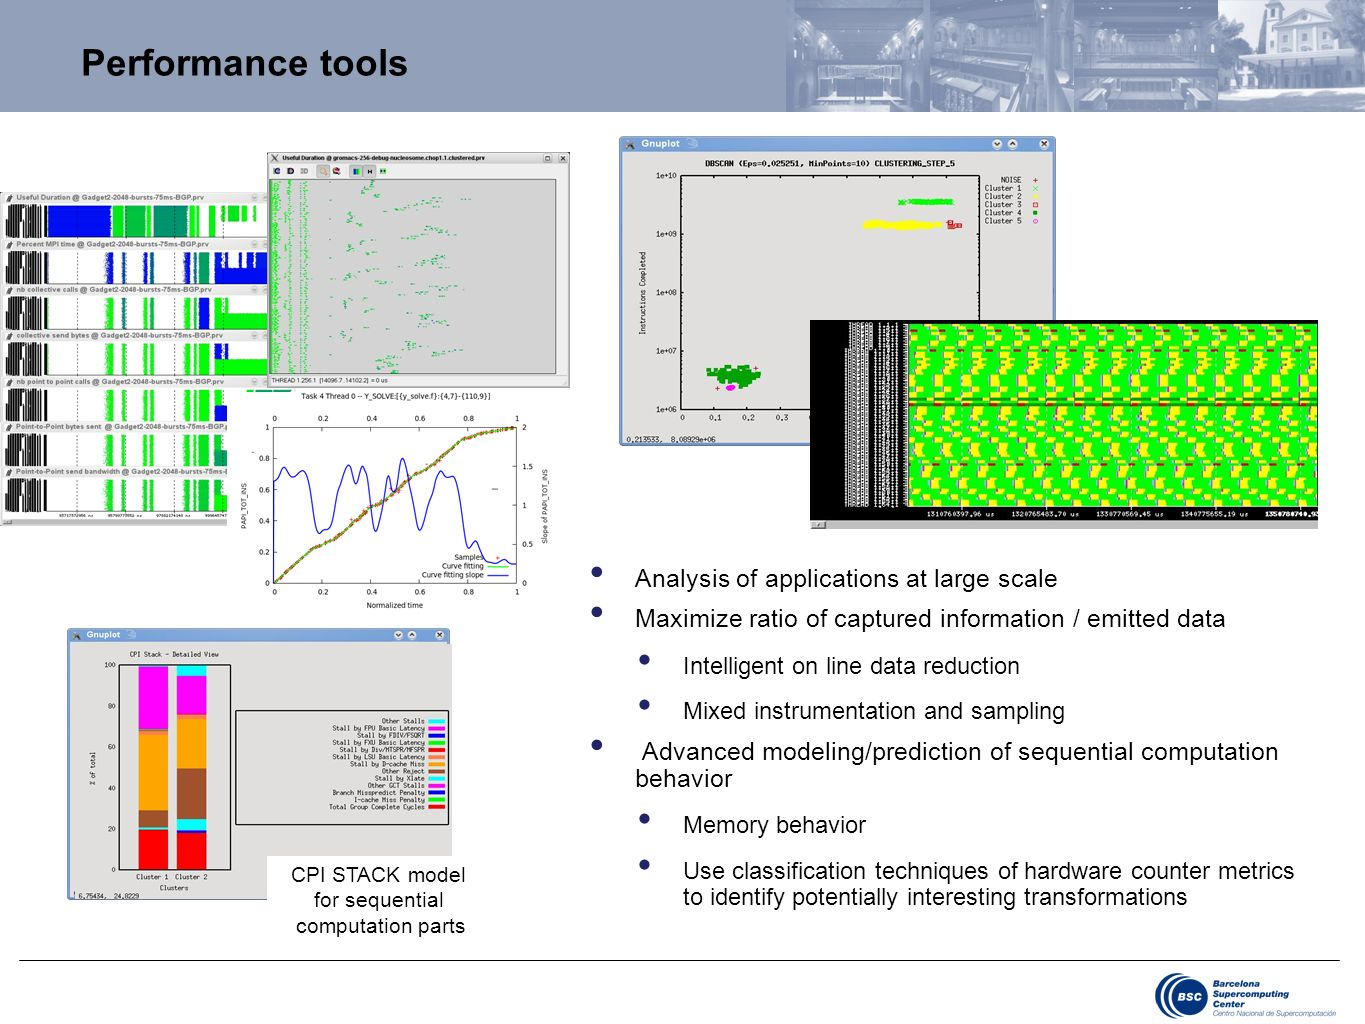 Performance tools Analysis of applications at large scale Maximize ratio of captured information / emitted data Intelligent on line data reduction Mixed instrumentation and sampling Advanced modeling/prediction of sequential computation behavior Memory behavior Use classification techniques of hardware counter metrics to identify potentially interesting transformations CPI STACK model for sequential computation parts